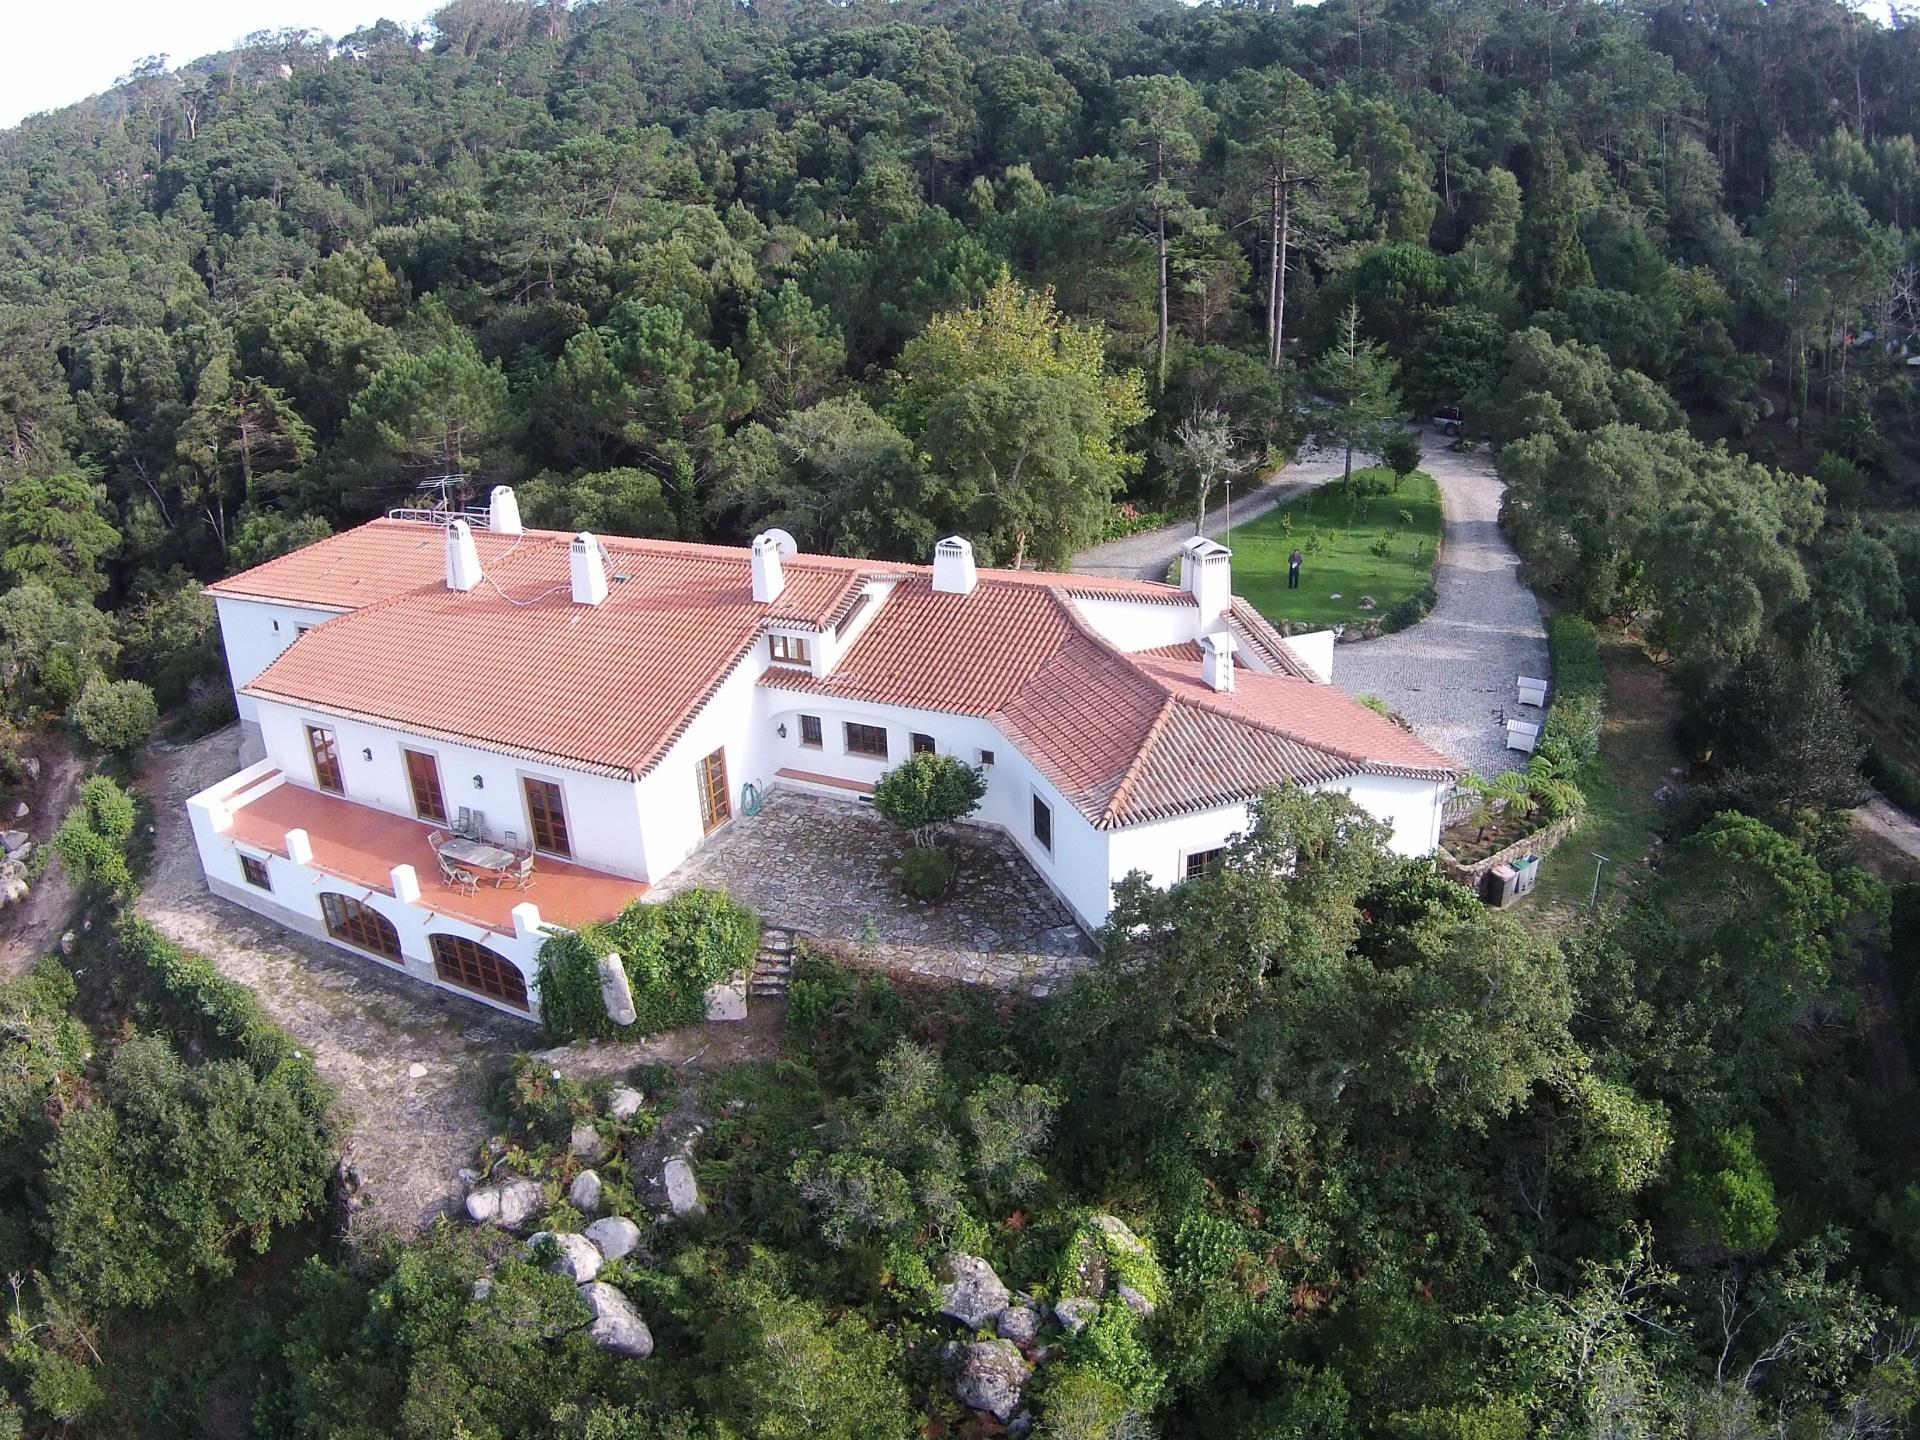 Fattoria / ranch / campagna per Vendita alle ore Farm, 7 bedrooms, for Sale Sintra, Sintra, Lisbona Portogallo